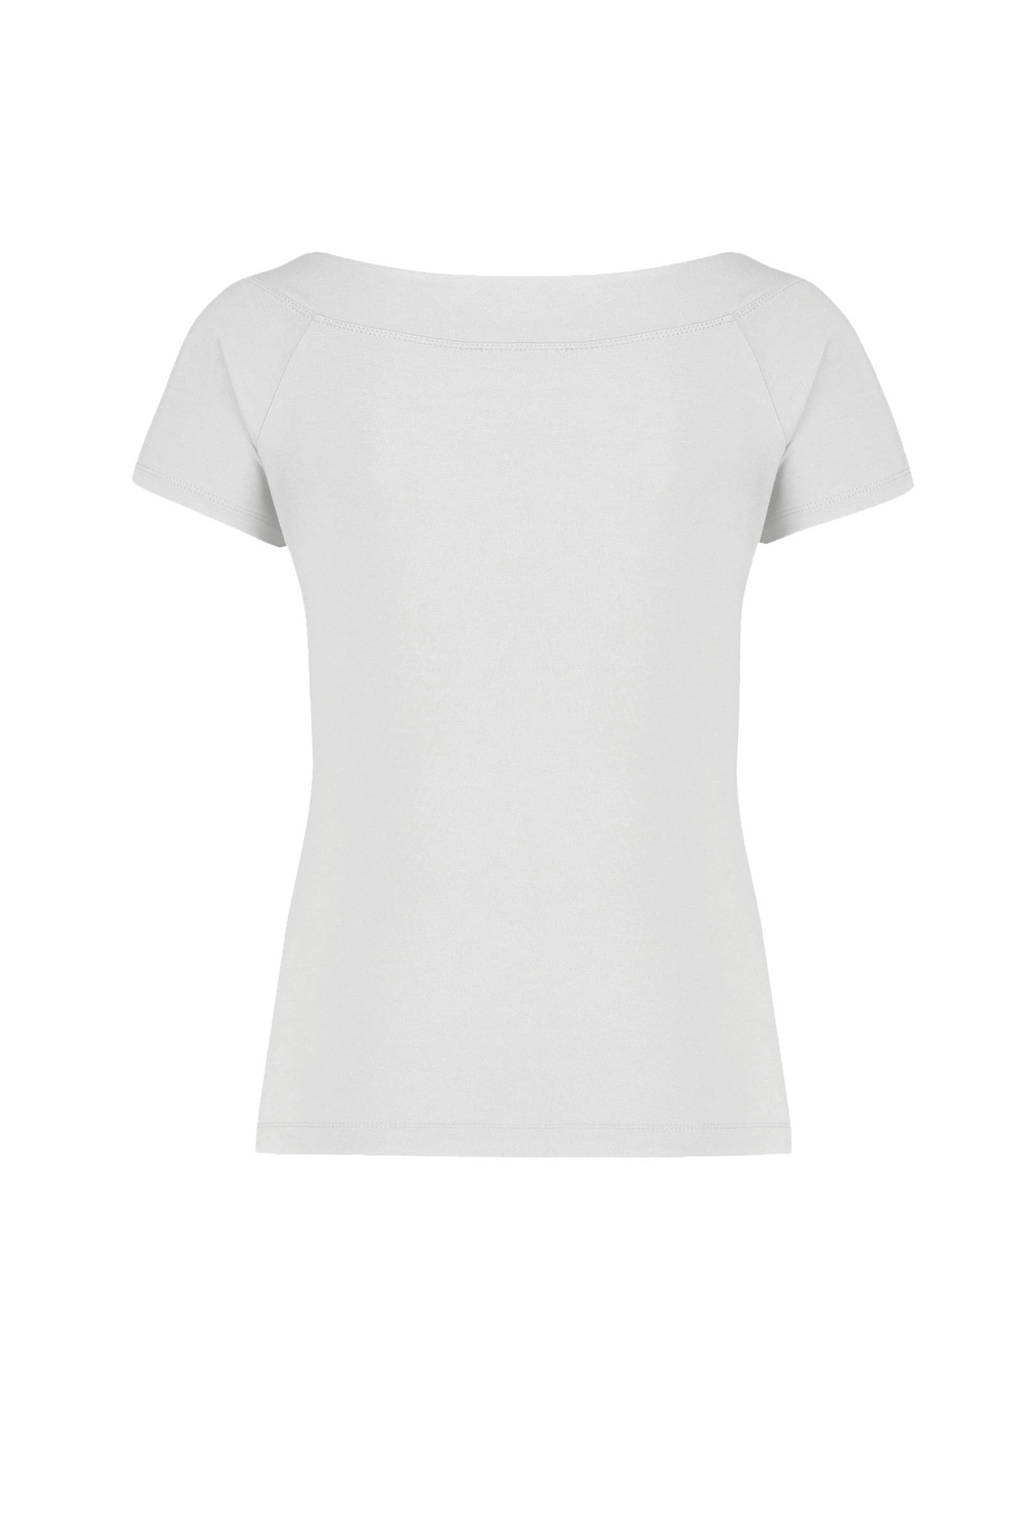 Claudia Sträter off shoulder top off white, Off White